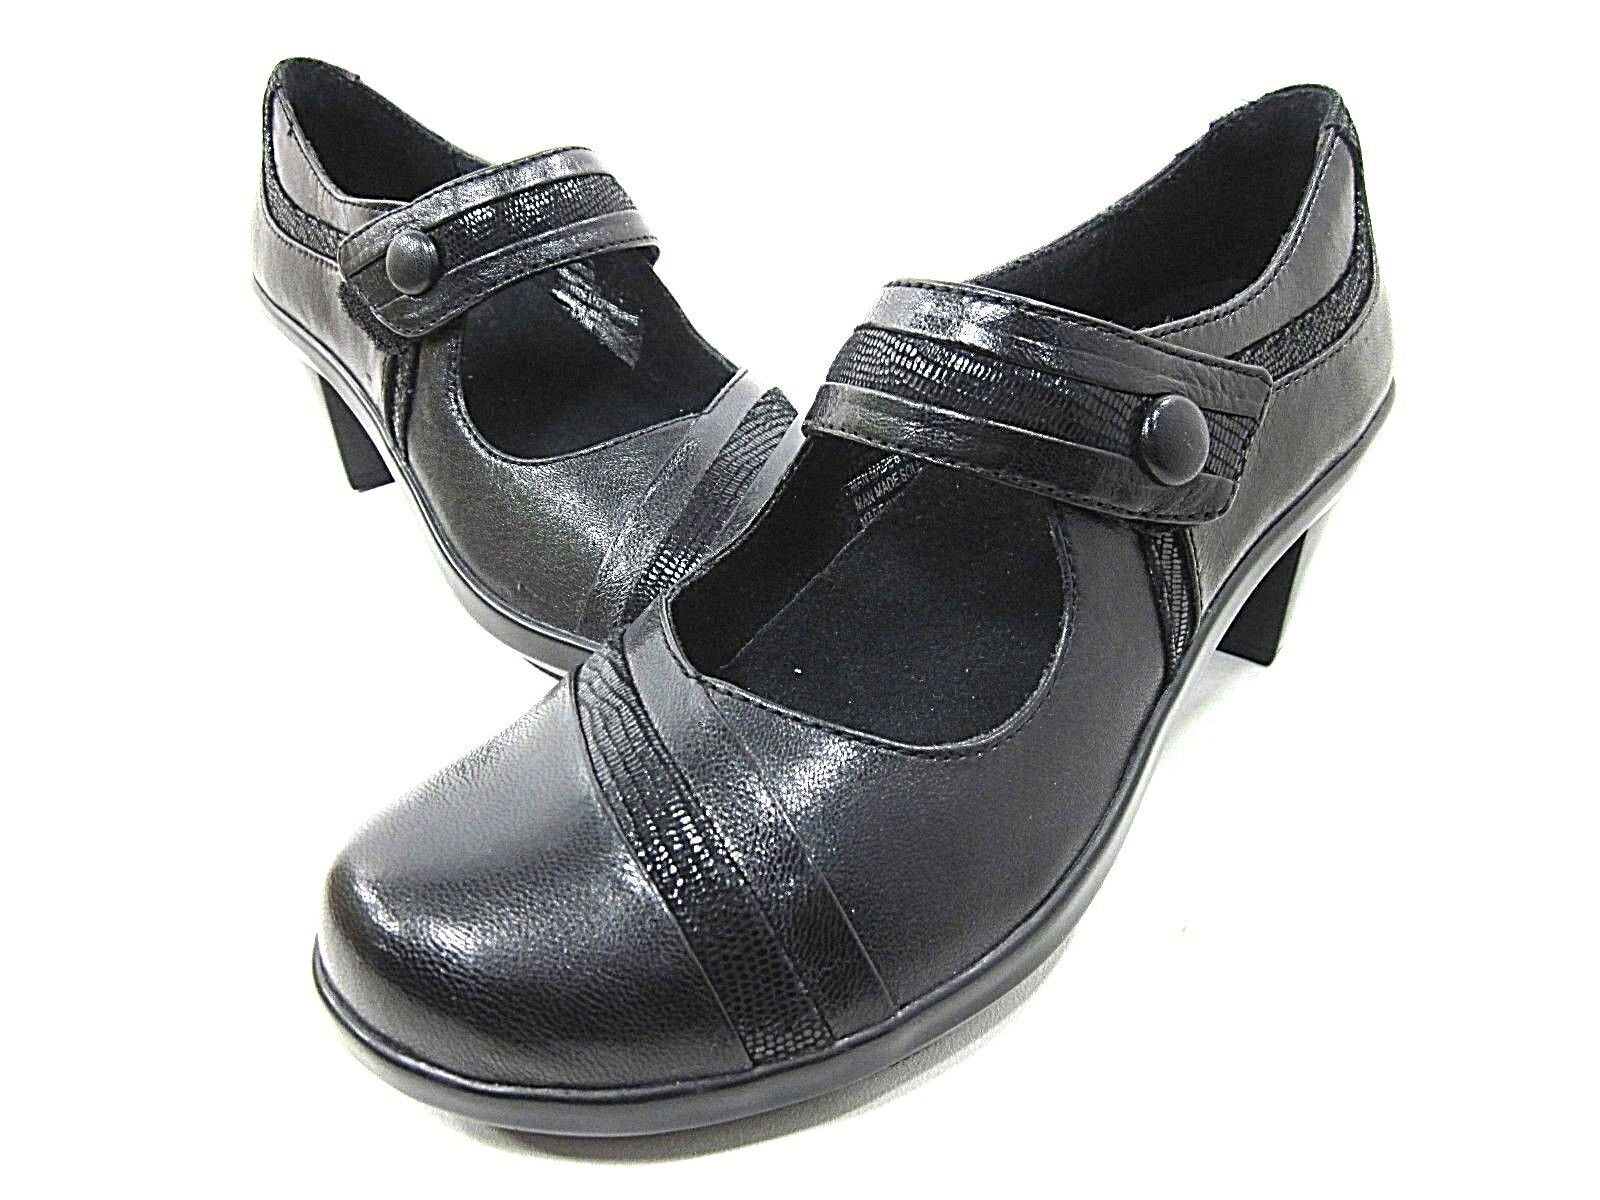 ARAVON, ANNA MARY JANE SHOES, WOMEN'S, BLACK, US SIZE 6.5 AA Narrow, NEW